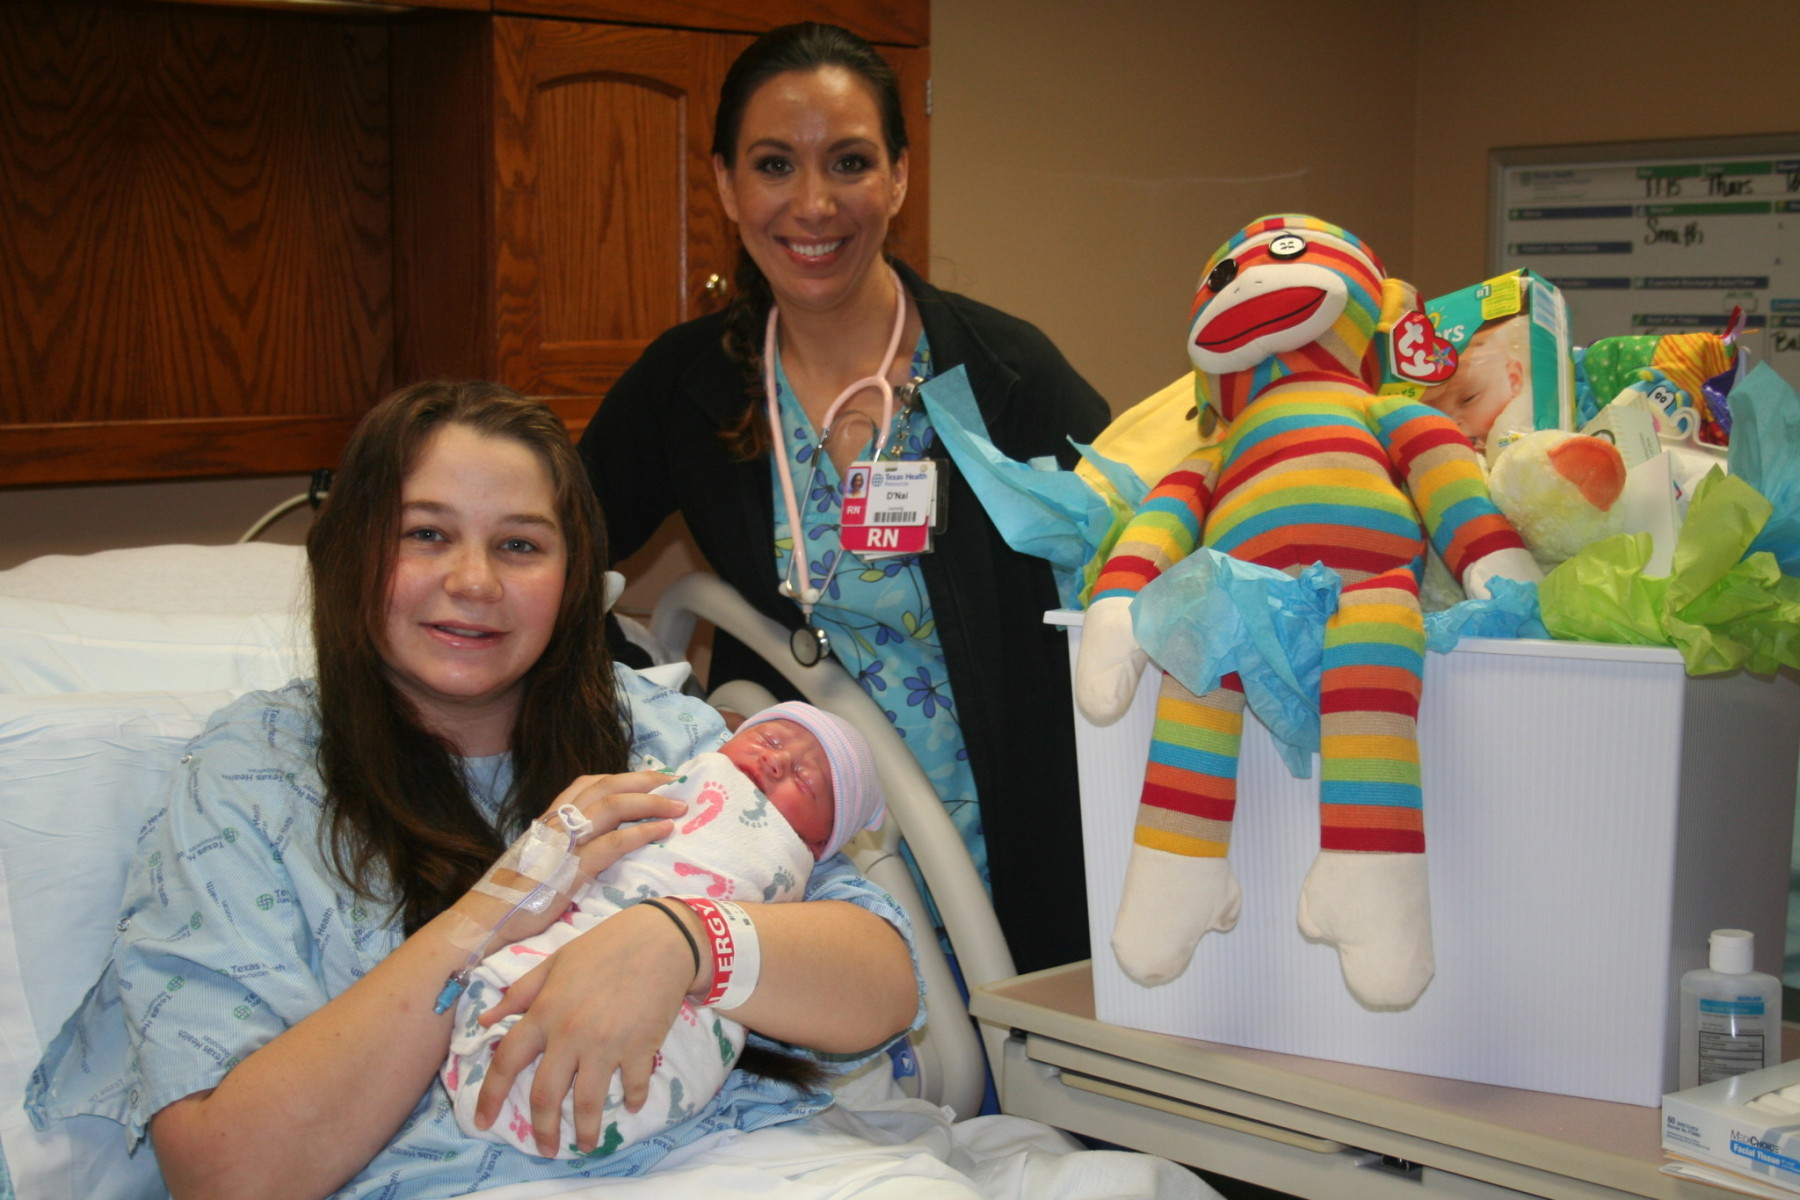 Aiden Allan, born January 2 and weighing 8lbs.1oz., was the first baby born at the hospital in 2015 at Texas Health Harris Methodist Hospital Stephenville. He is pictured here with mother Emily Varney and D'Nai Johnson, RN.